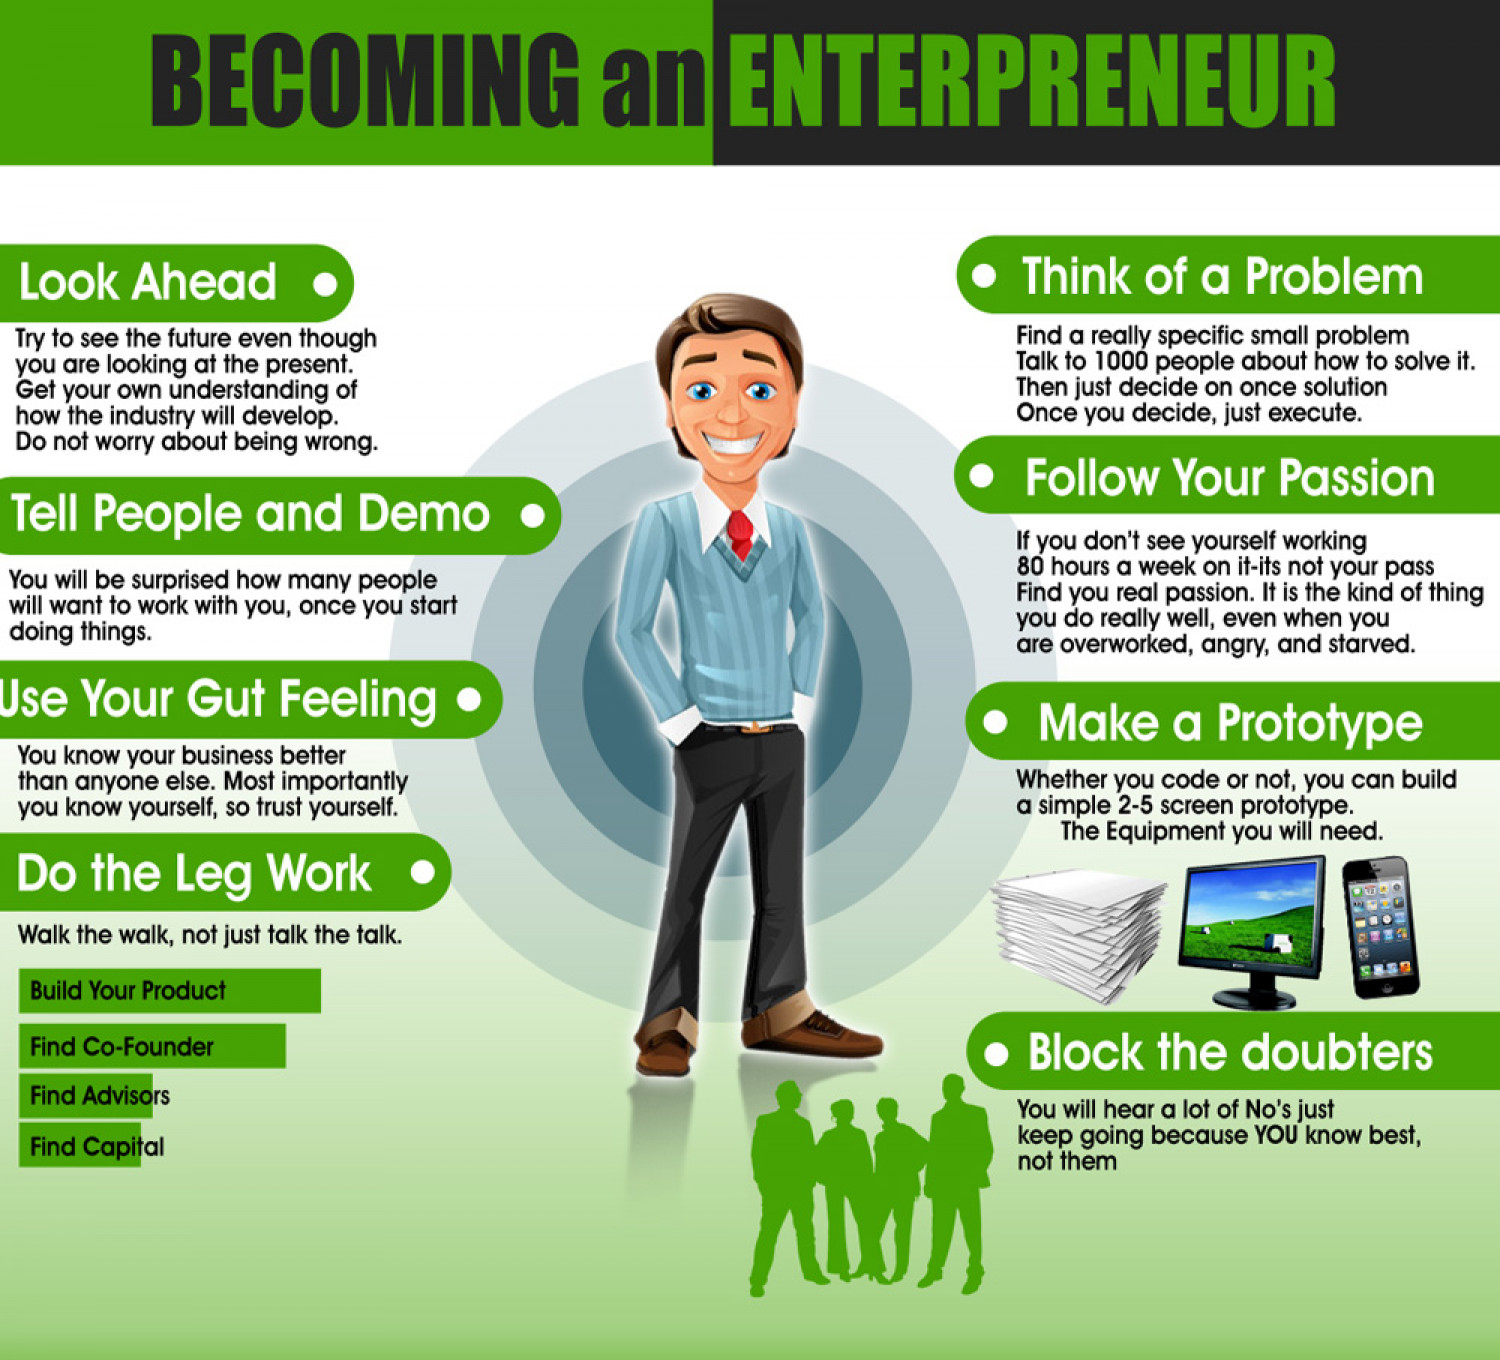 Becoming an Enterpreneur Infographic